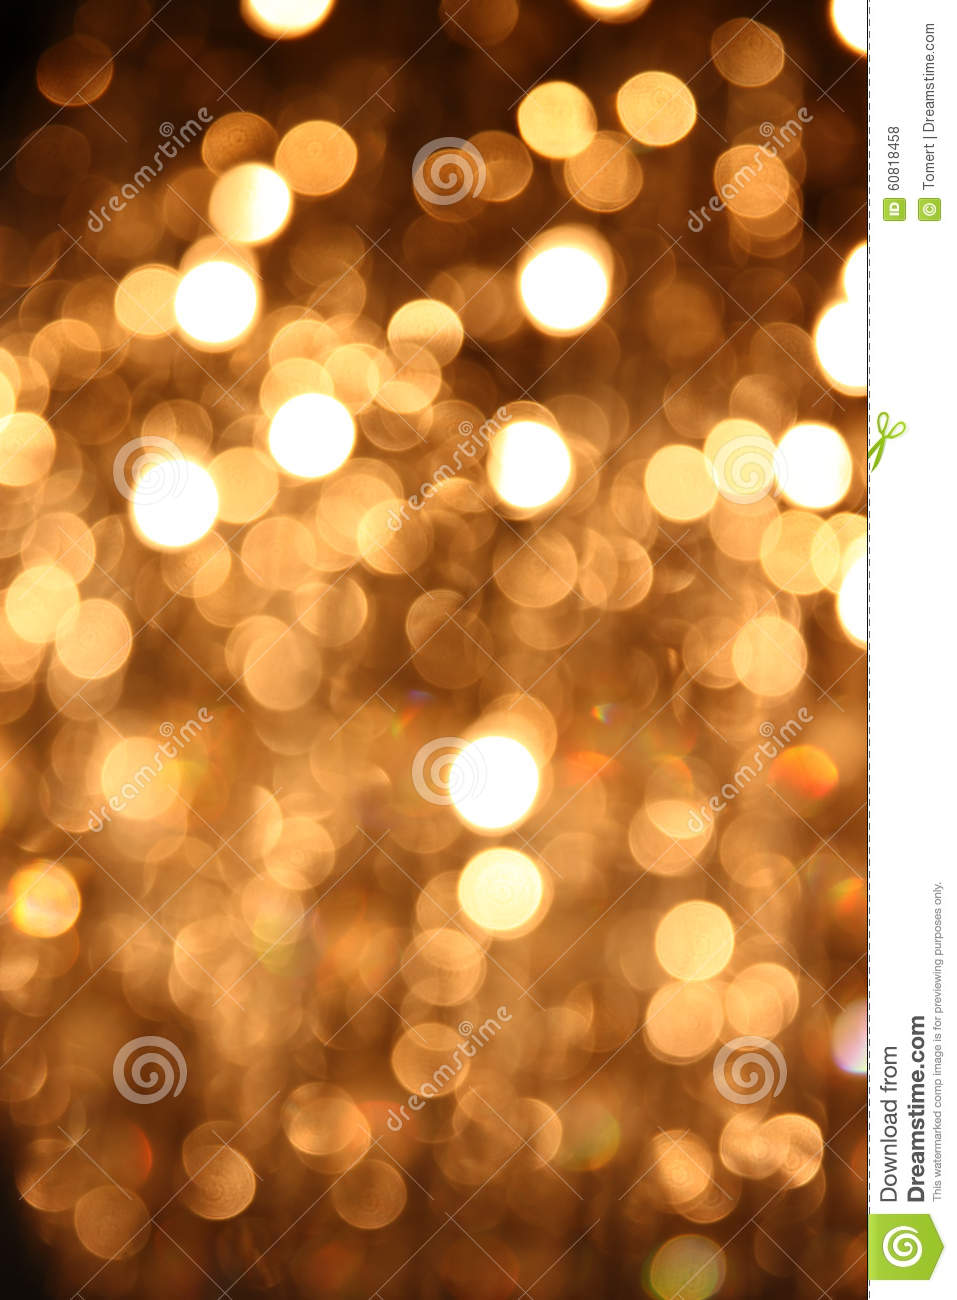 silver bling background lights - photo #26